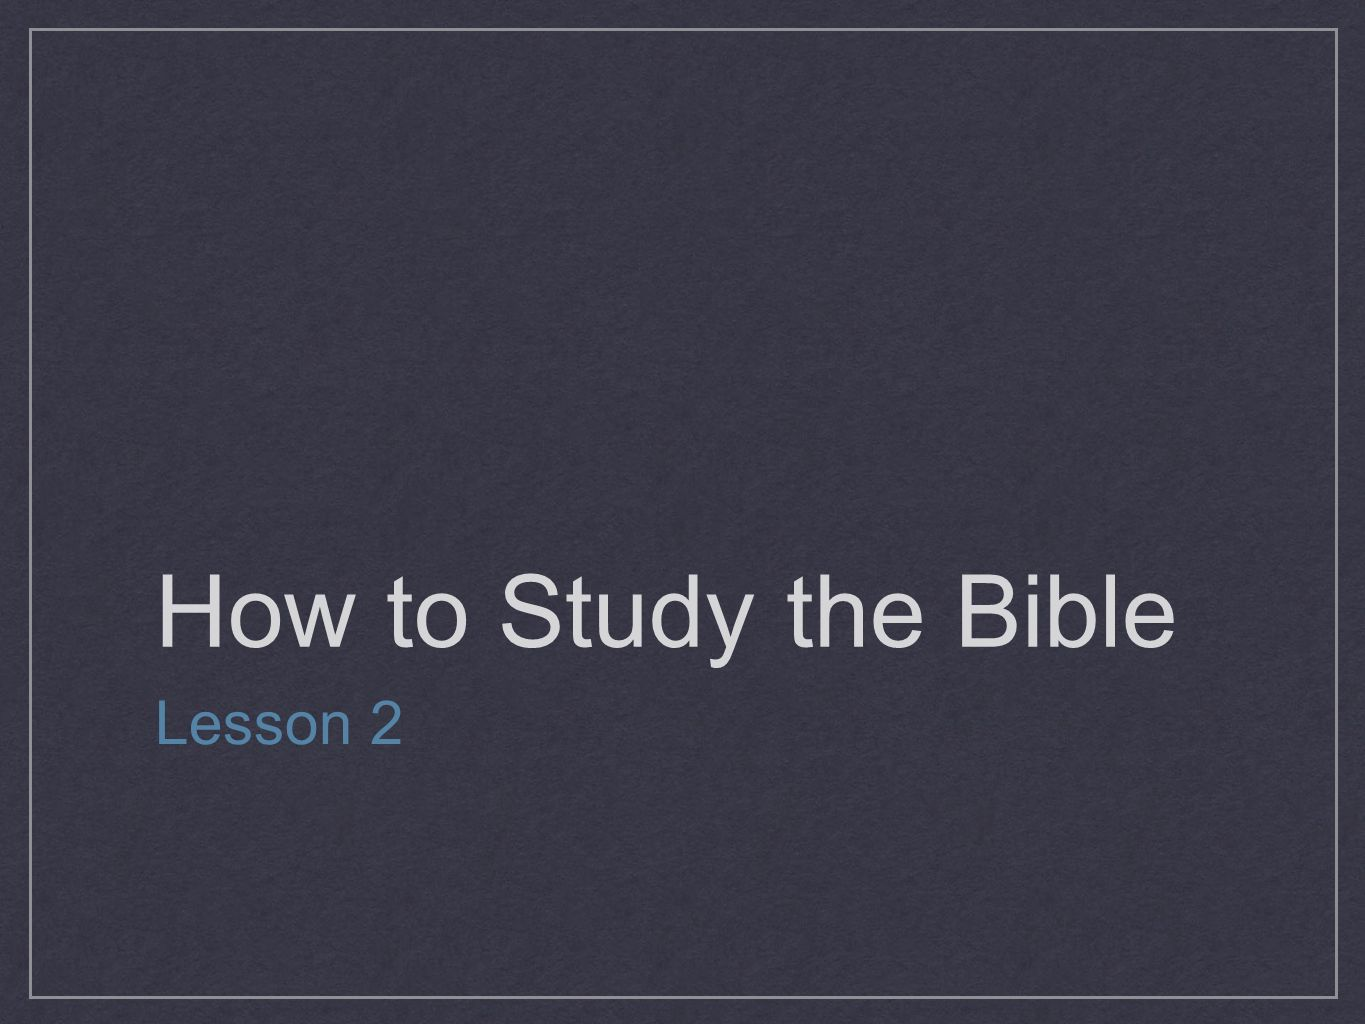 How to Study the Bible Lesson 2